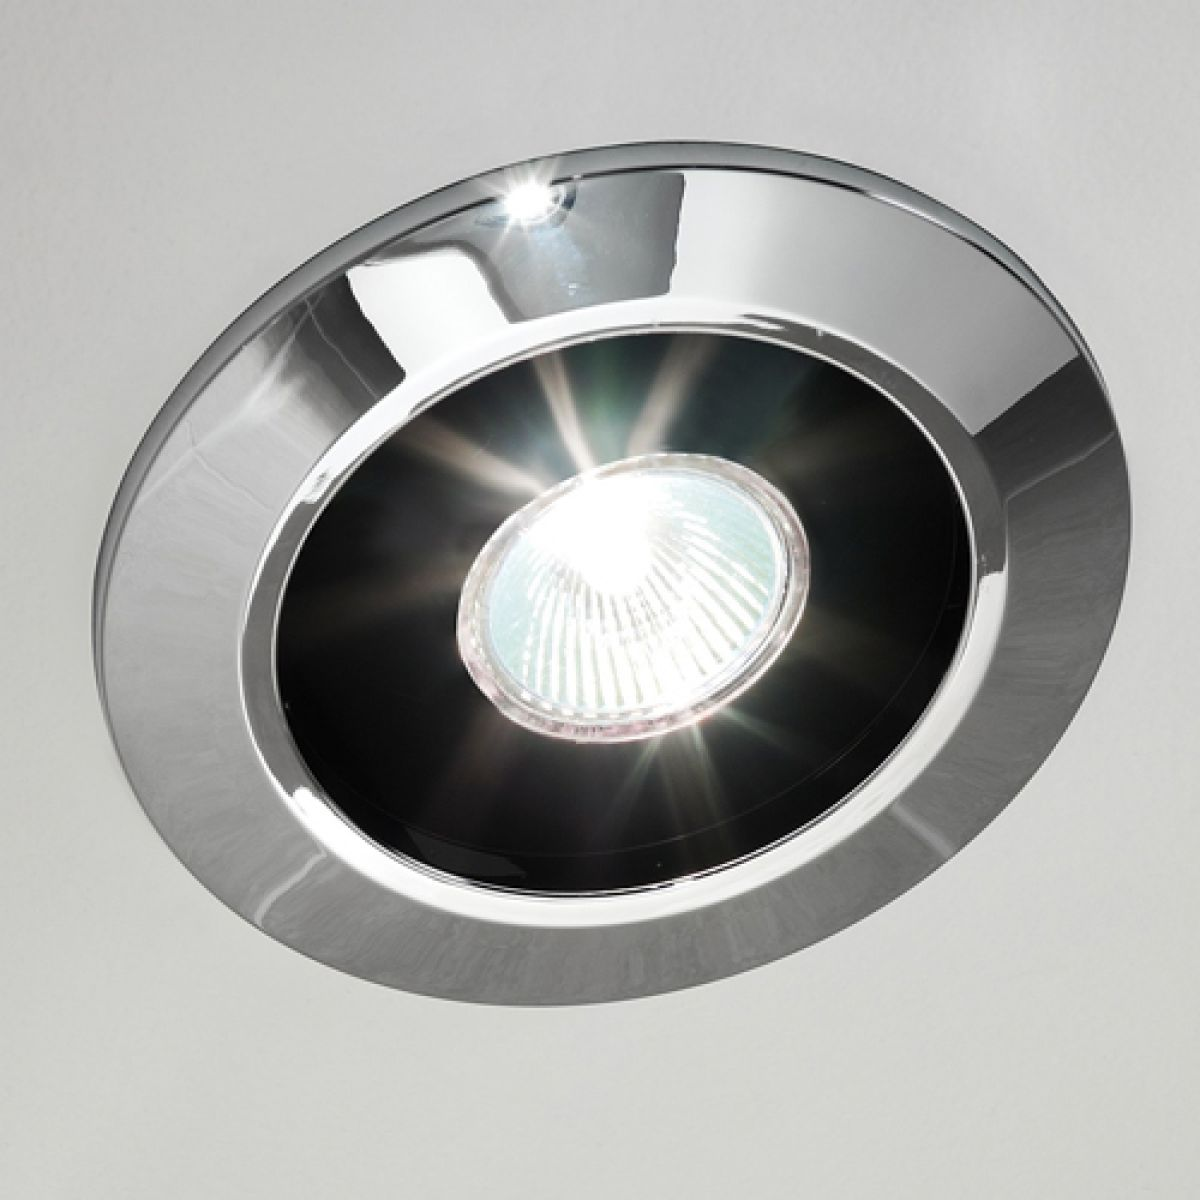 Bathroom Extraction Fan: Decorate Your Bathroom With Extractor Fan Ceiling